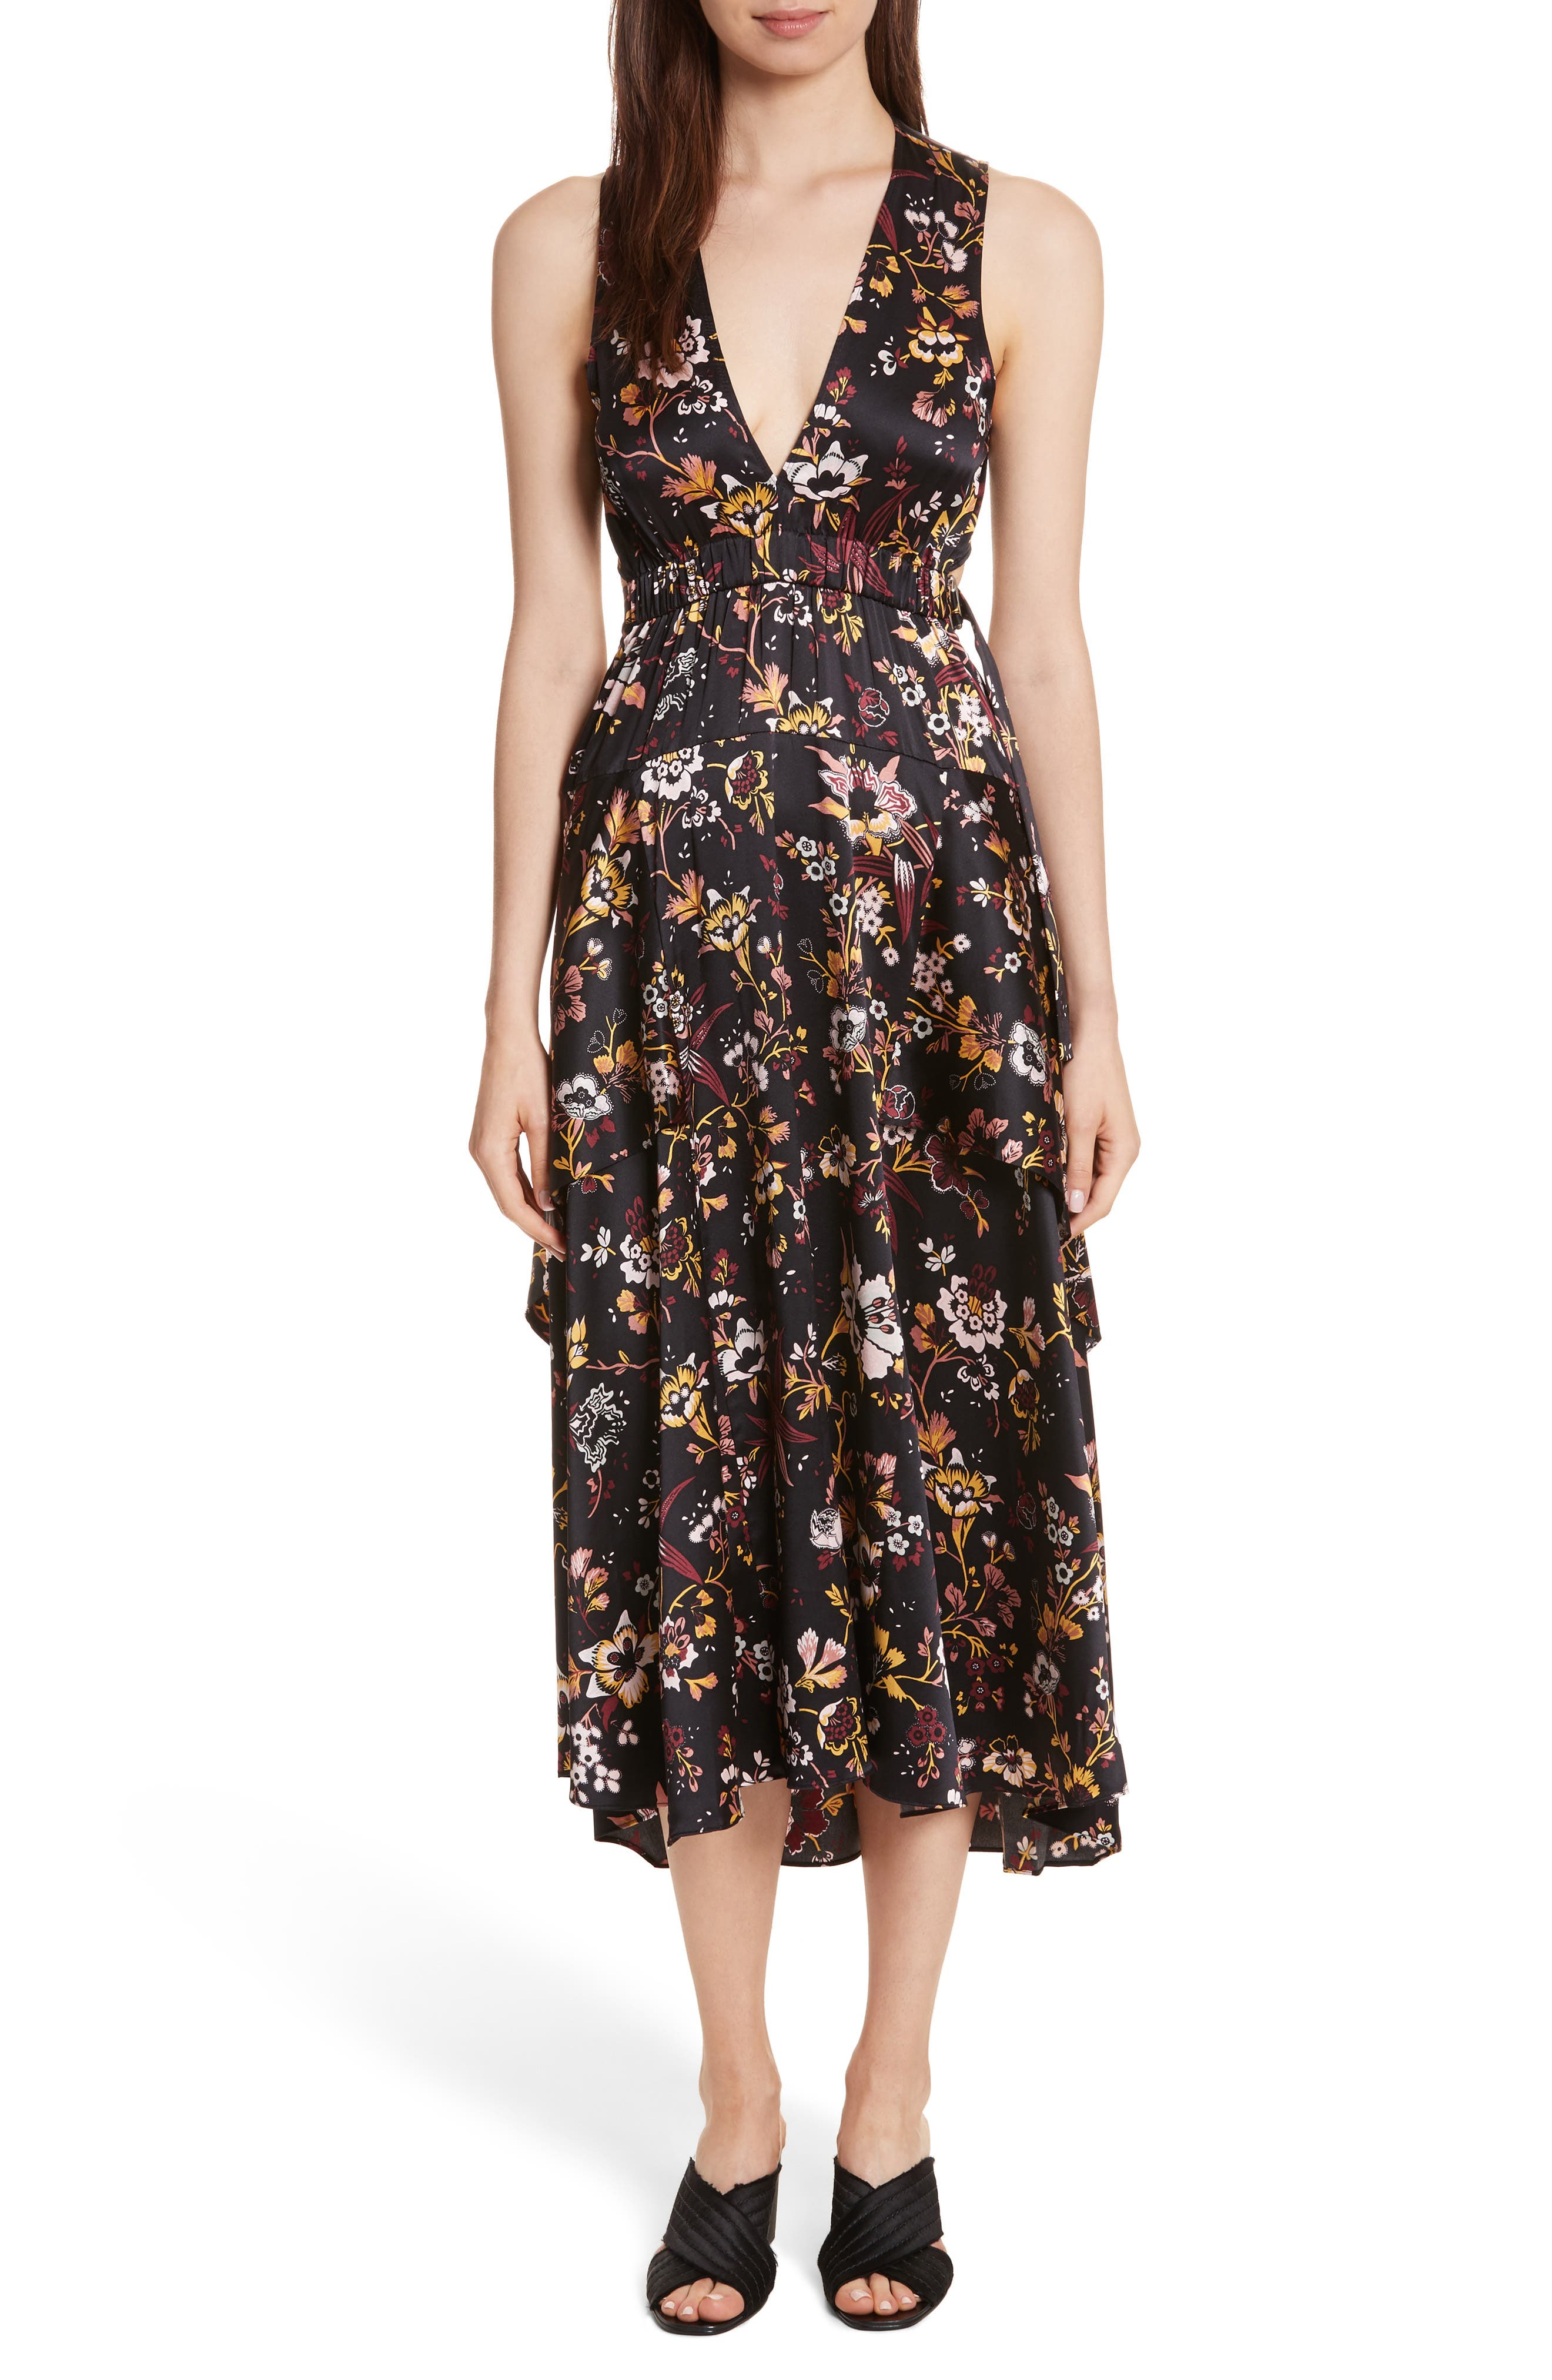 Verbena Floral Print Stretch Silk Dress,                         Main,                         color, Black/ Grey/ Mustard